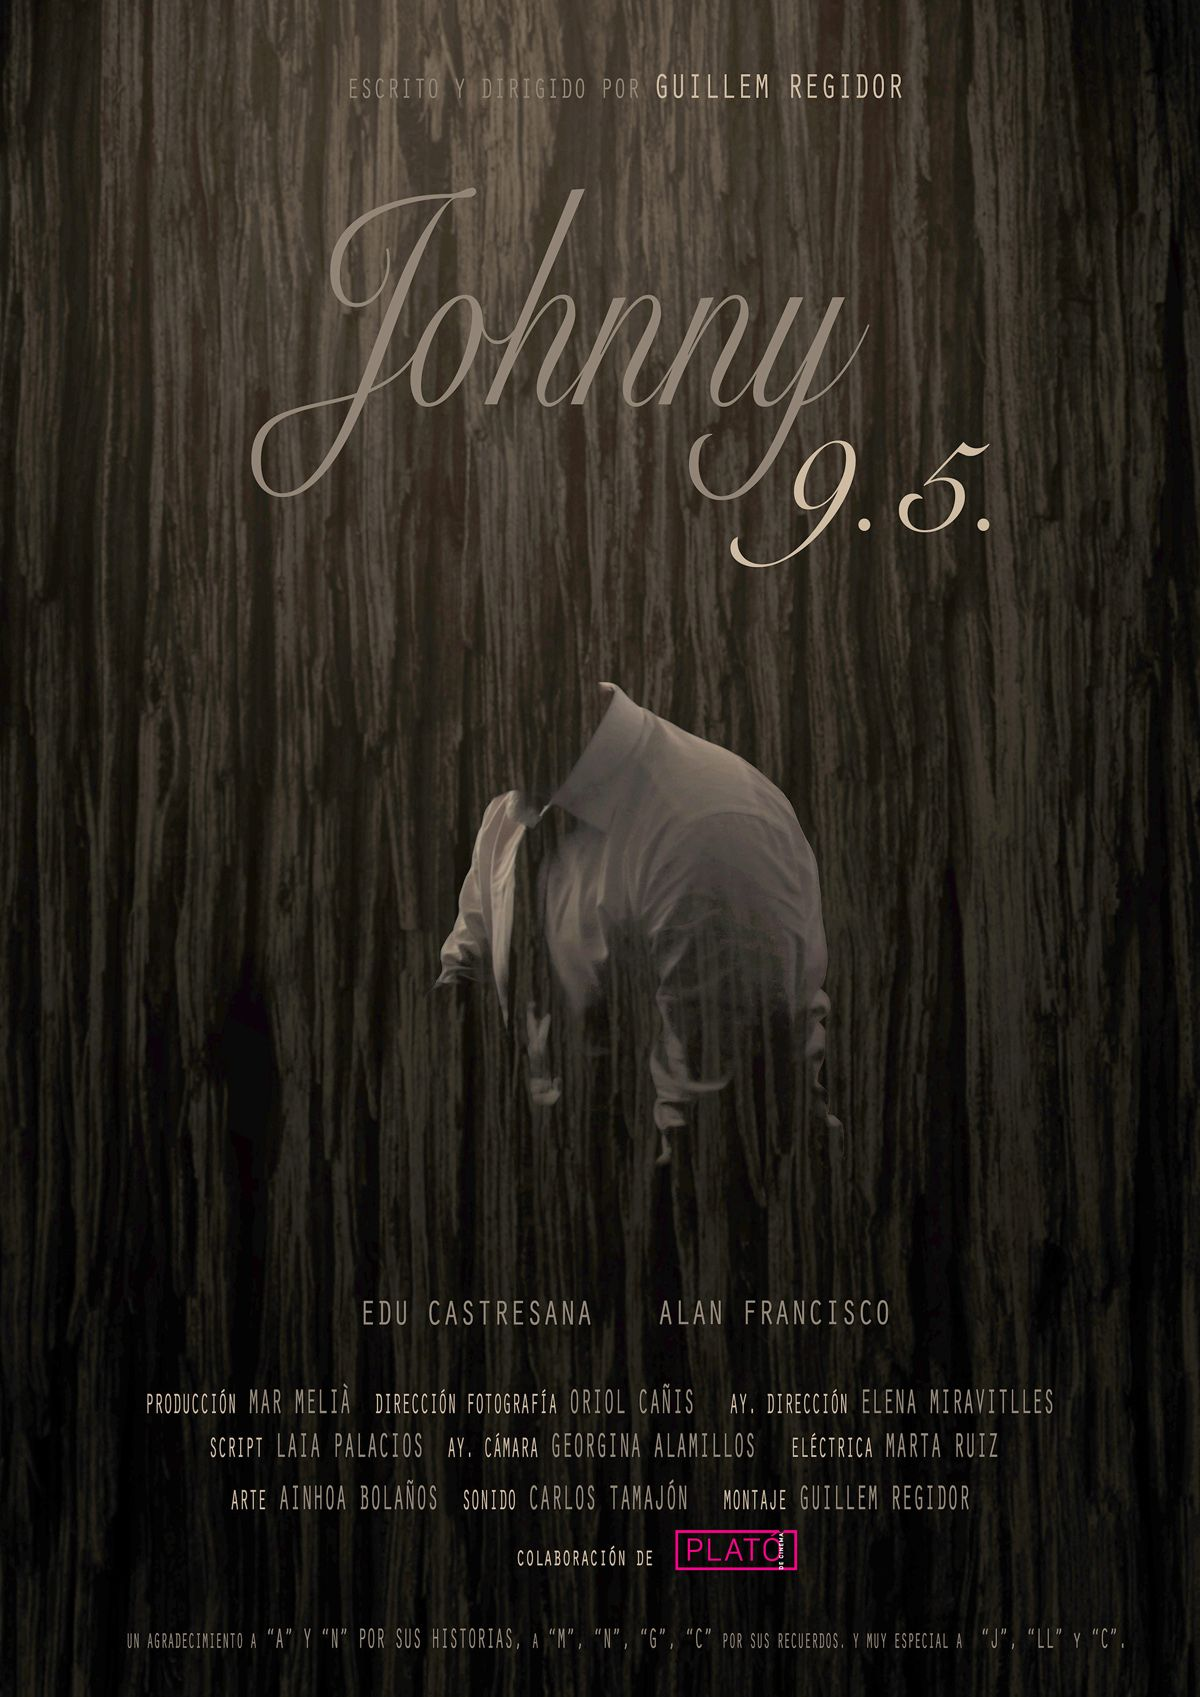 6-Cartell-Johnny95